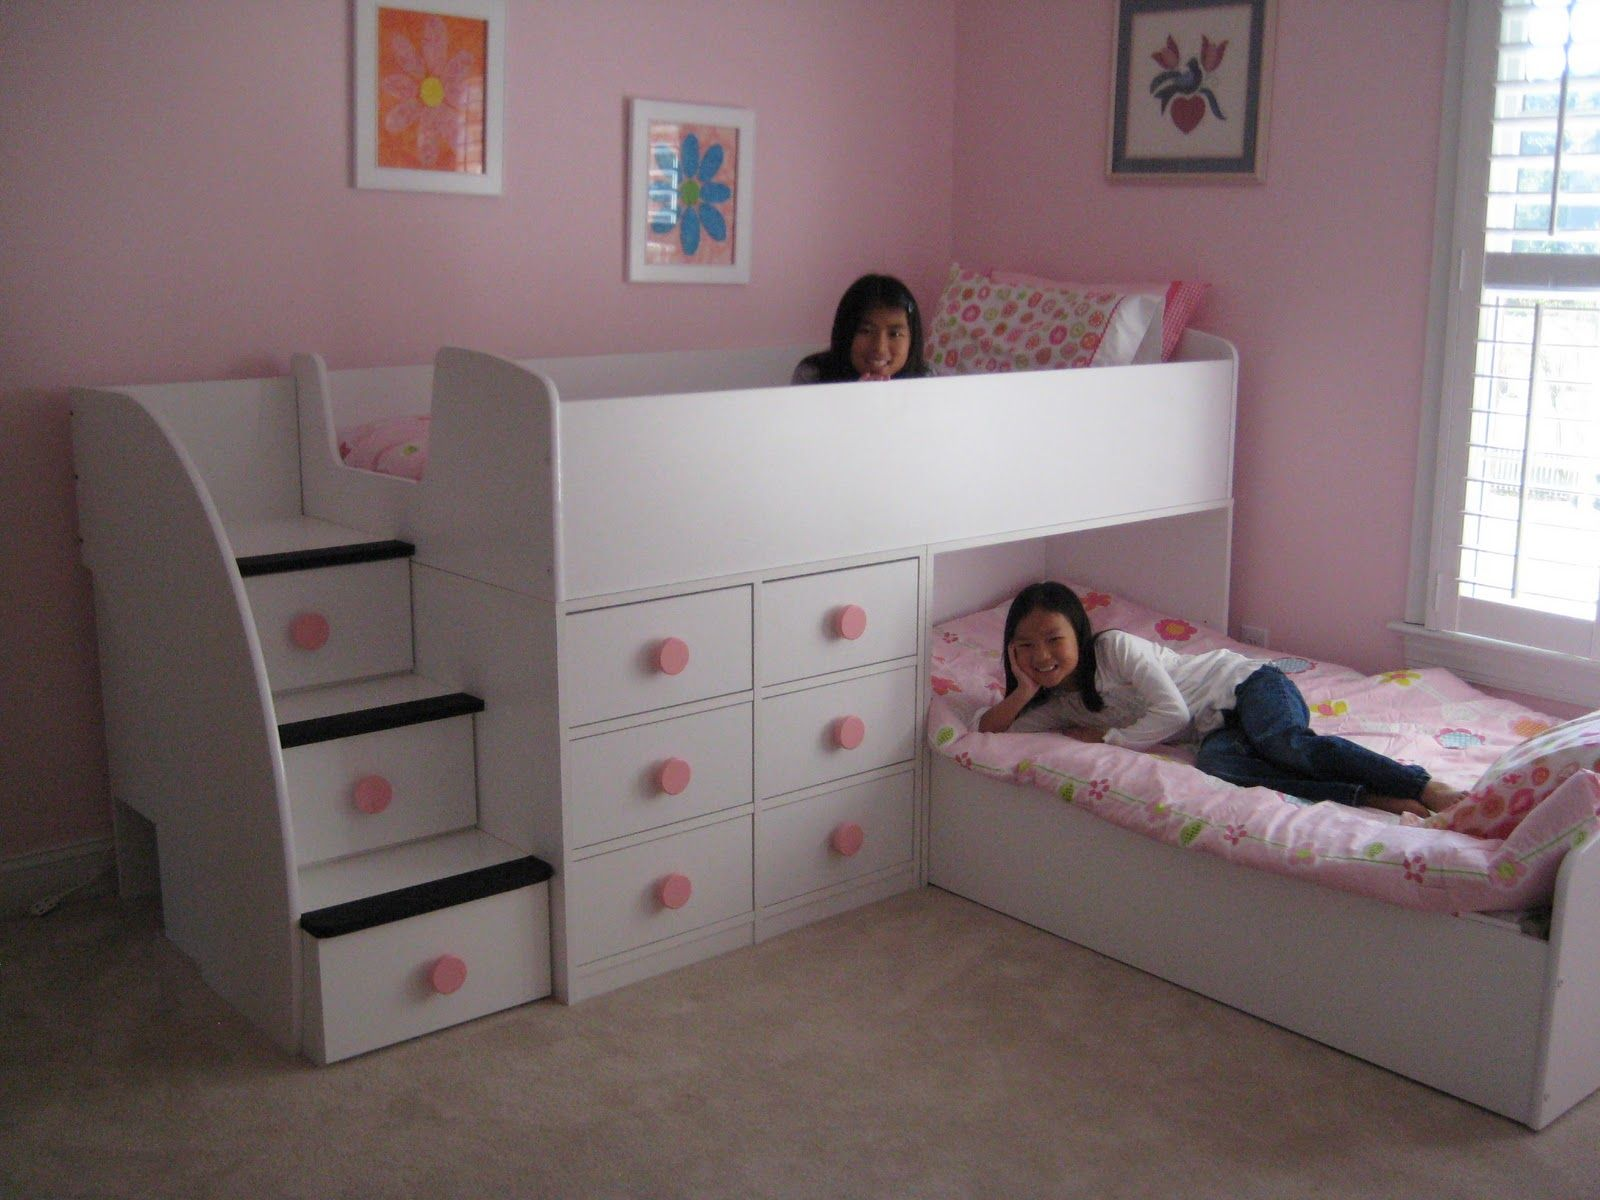 Appealing Teenage Girl Bedroom with Four Bunk Beds and White ...